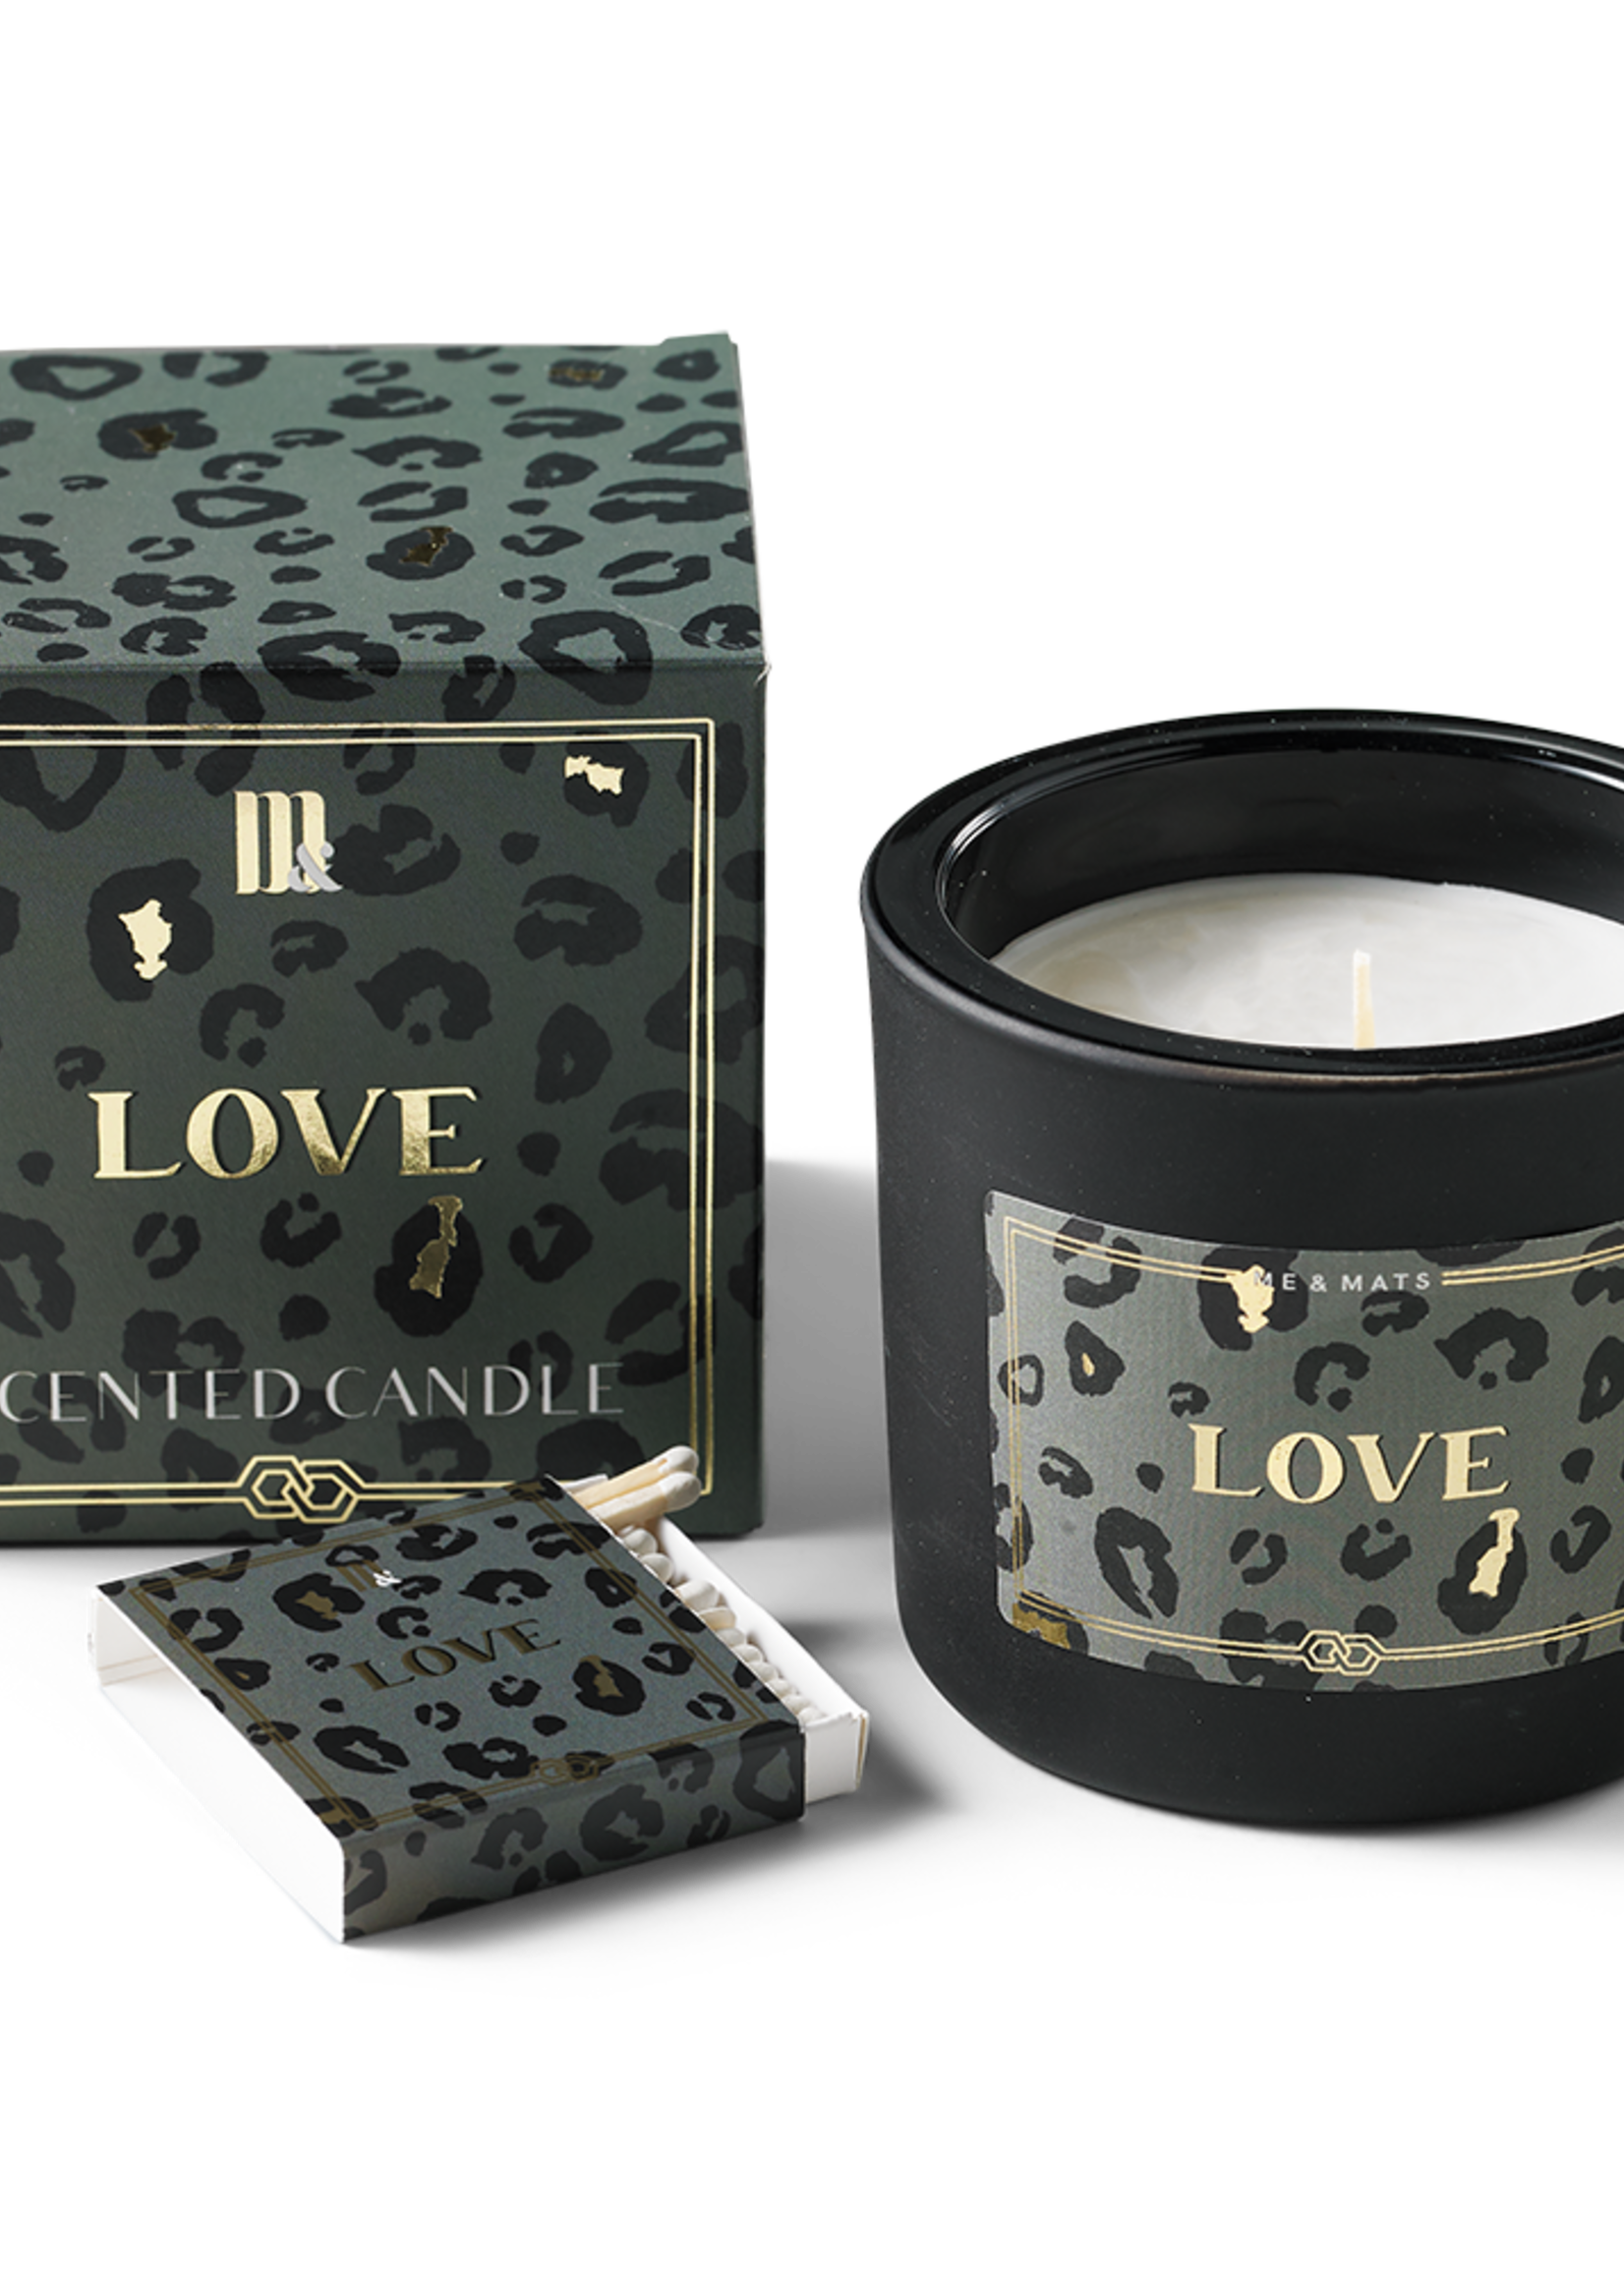 Me & Mats ME&MATS luxury scented candle - Crazy Leopard